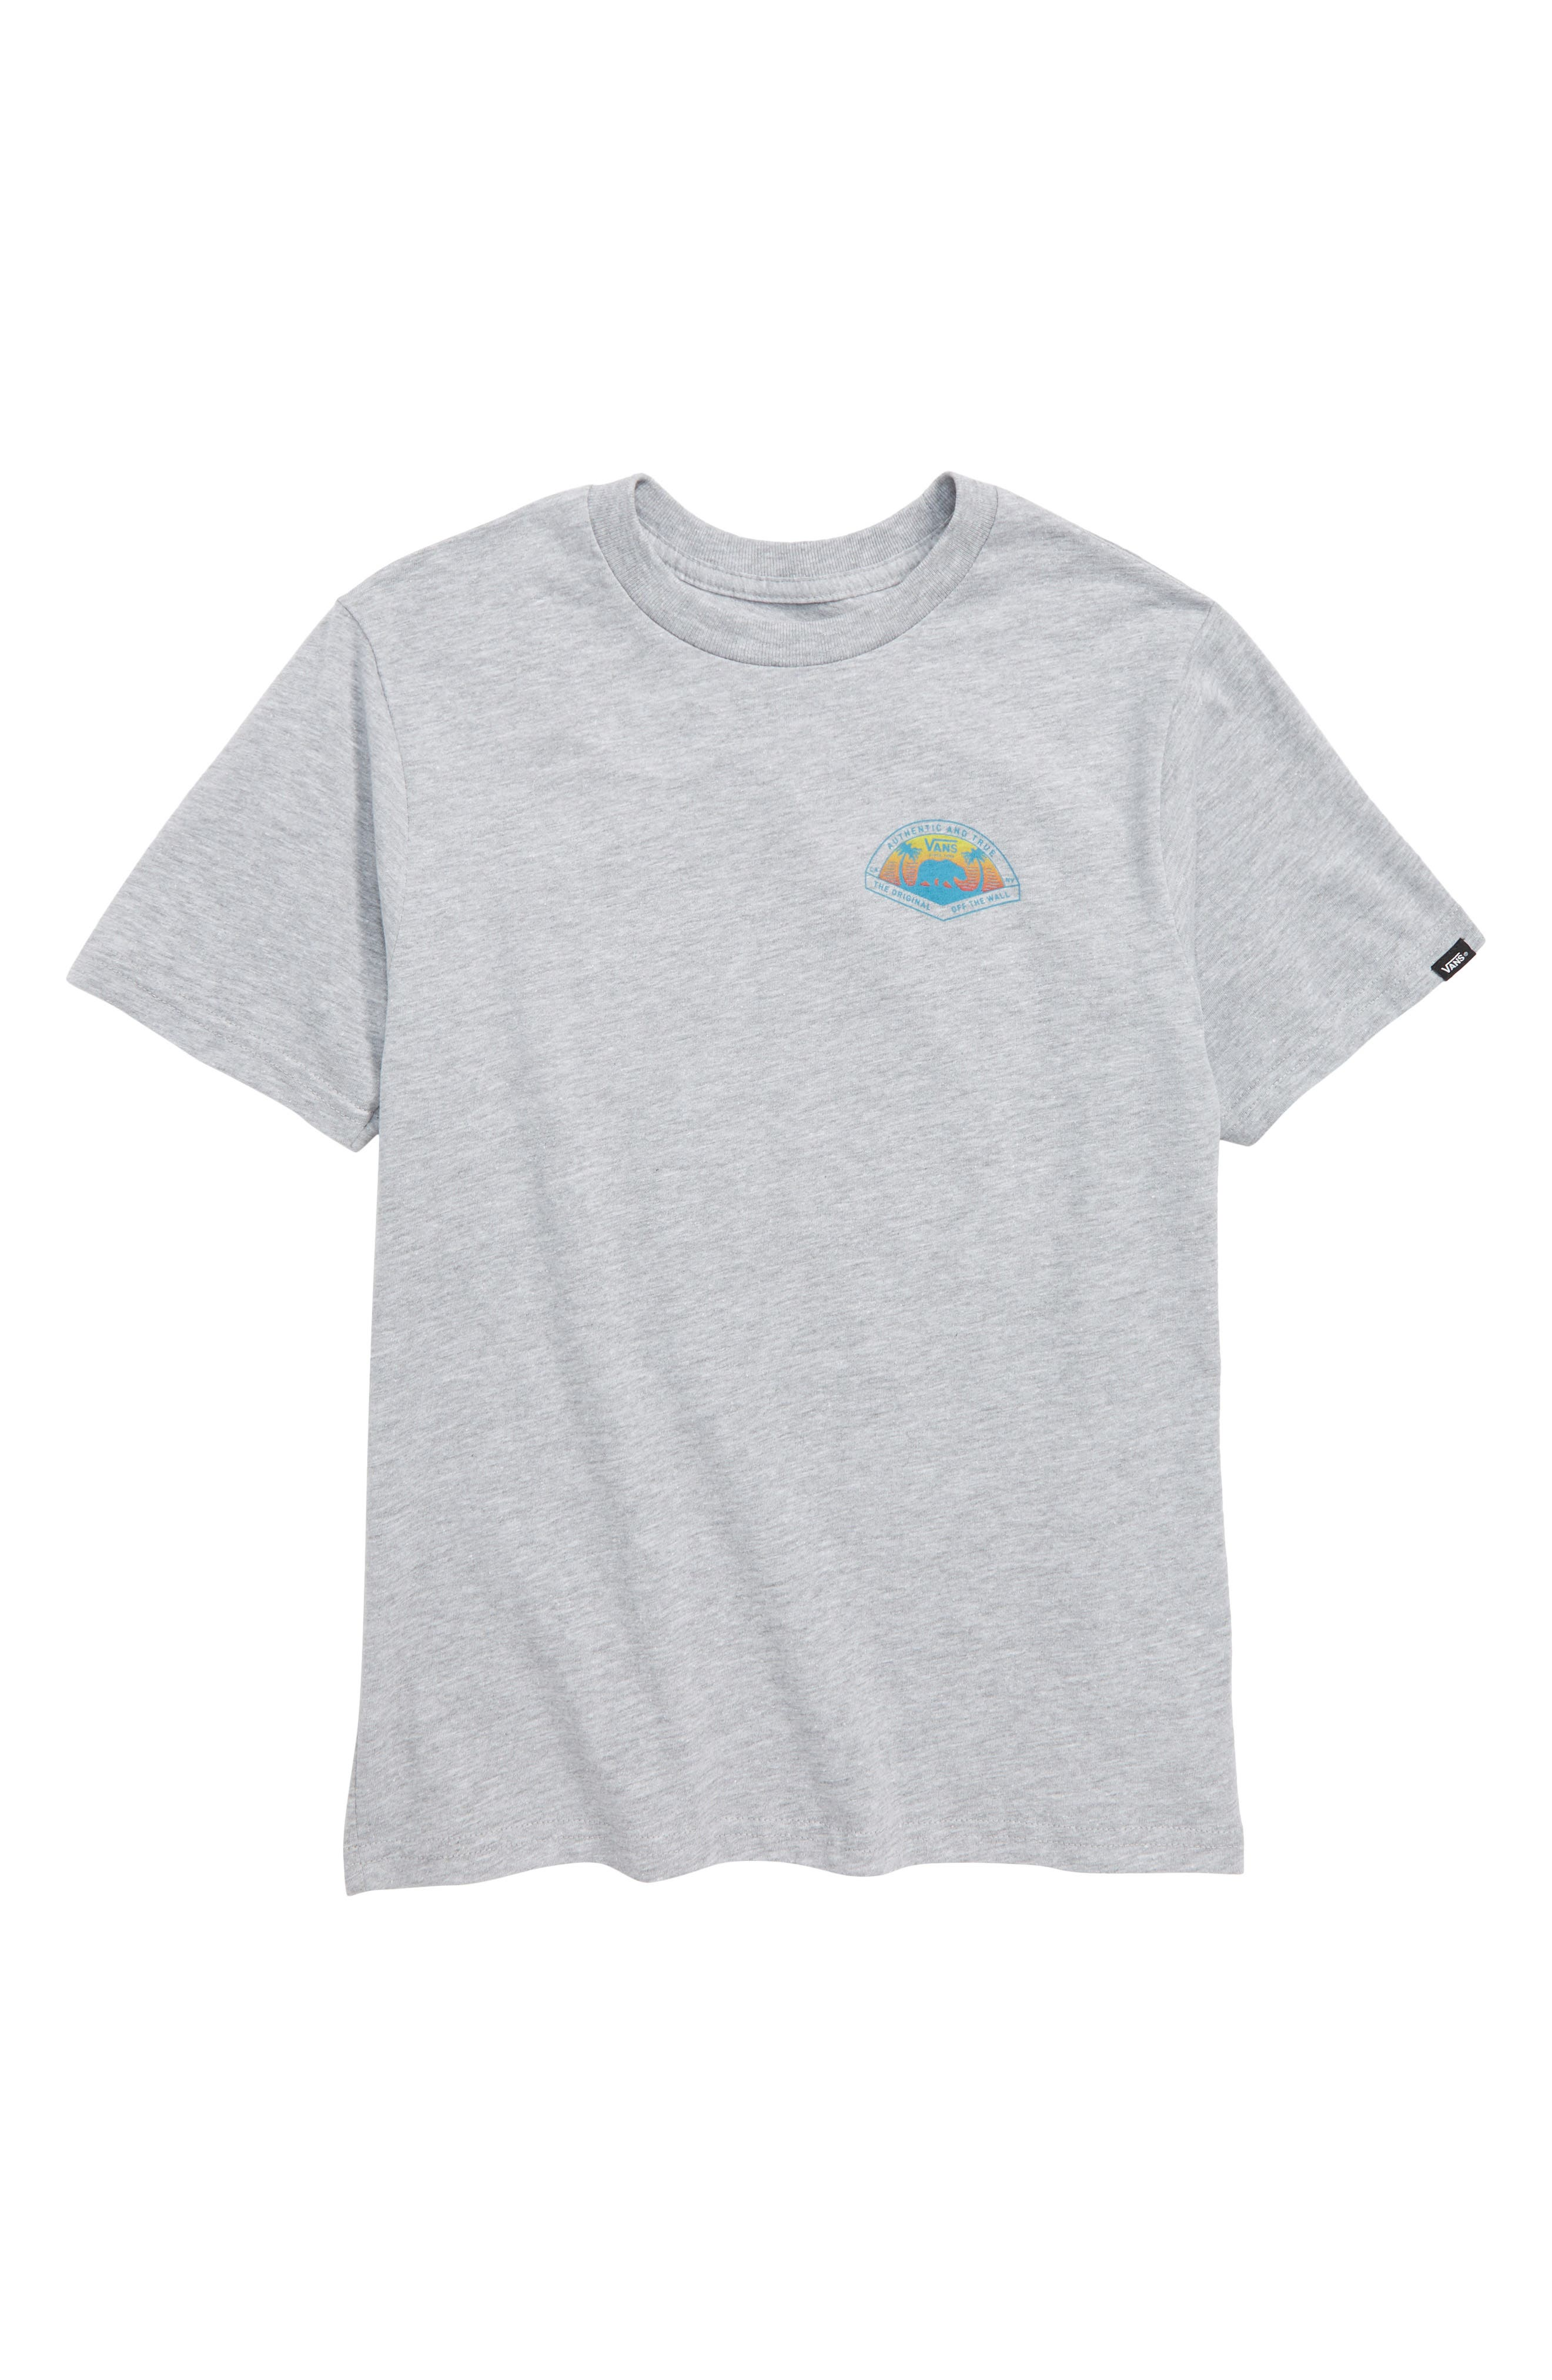 Grizzly Beach Graphic T-Shirt,                         Main,                         color, 021